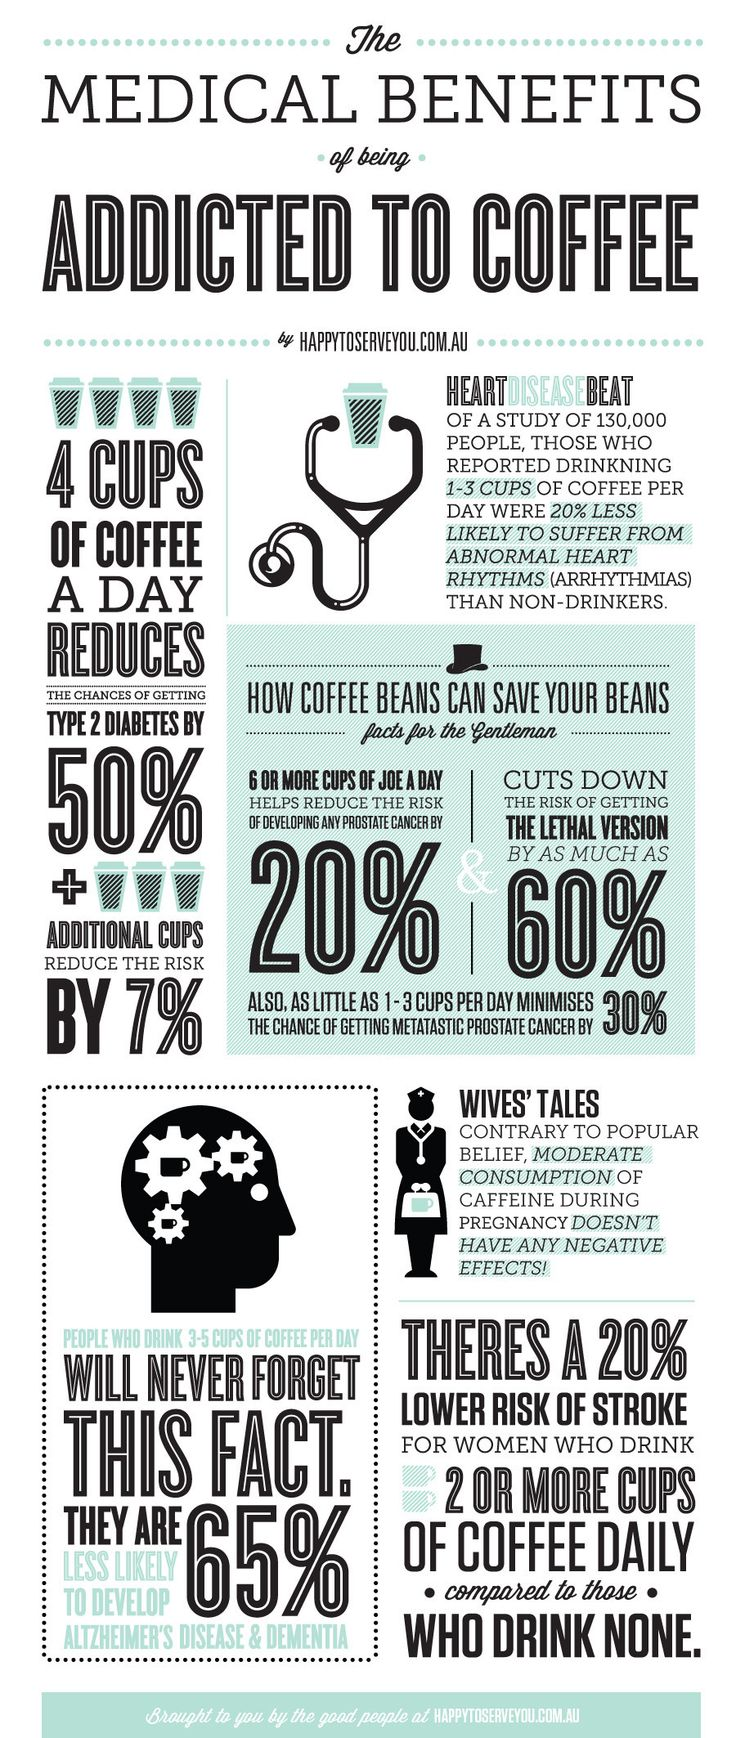 drinking coffee and its benefits